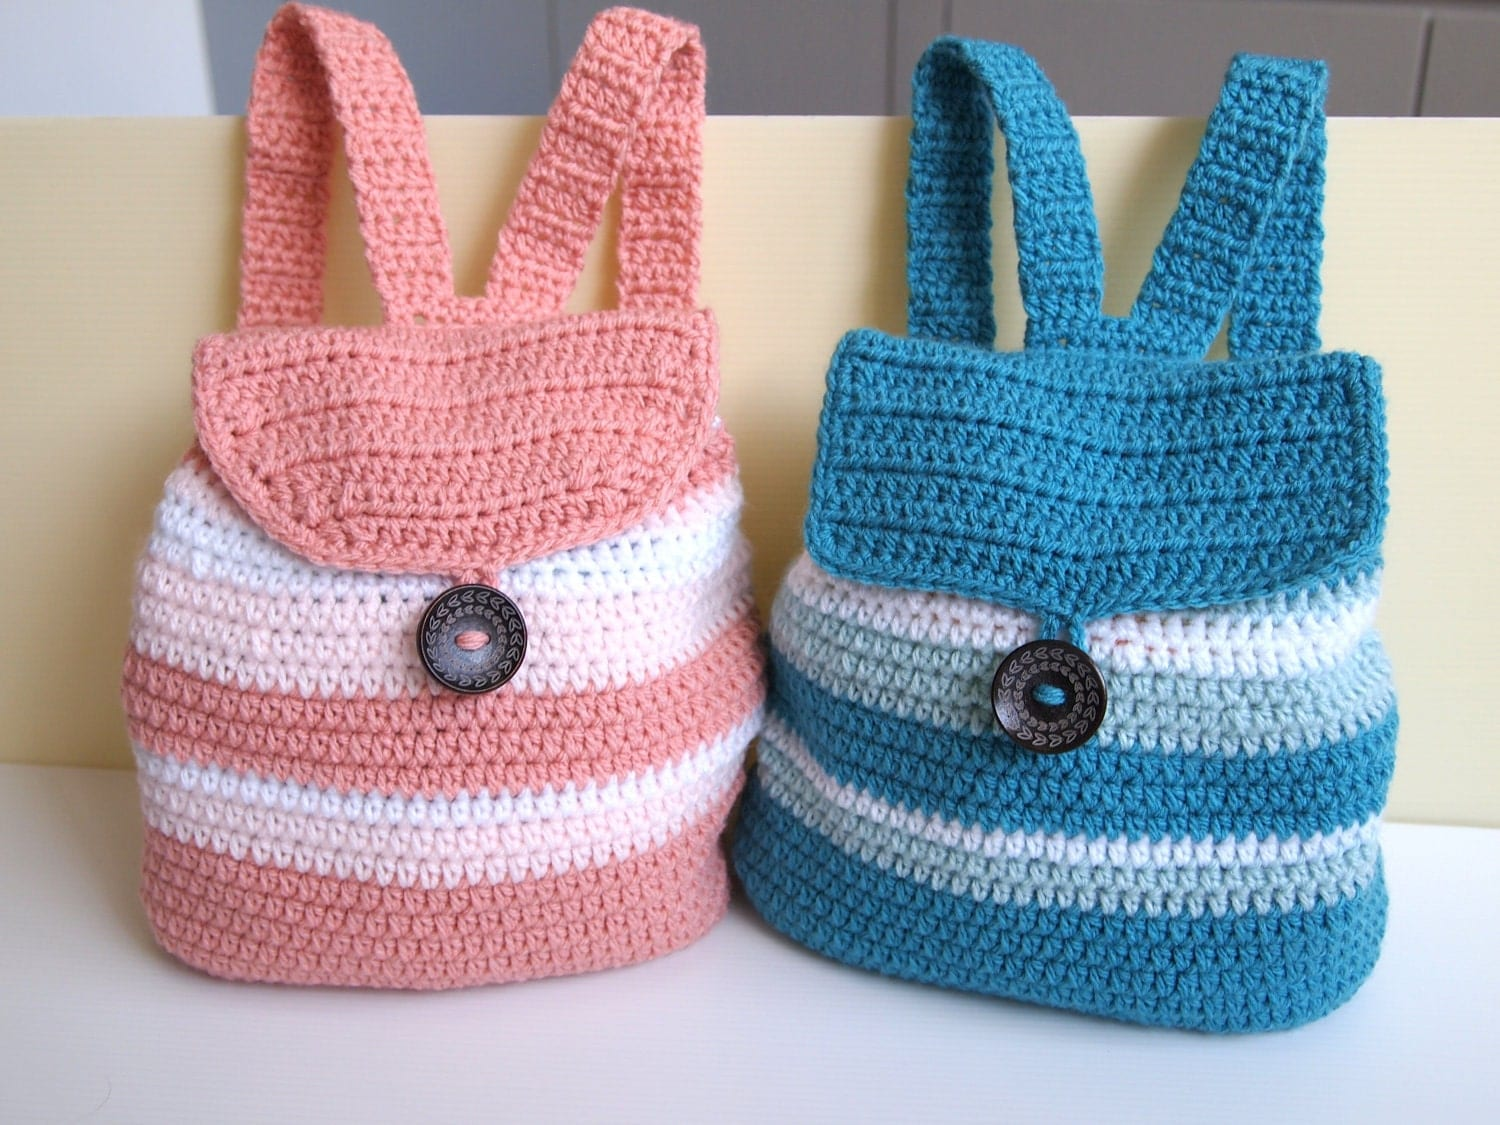 Crochet Back Bag : PDF Crochet Pattern Stripped Backpack for by TheAvaCloset on Etsy